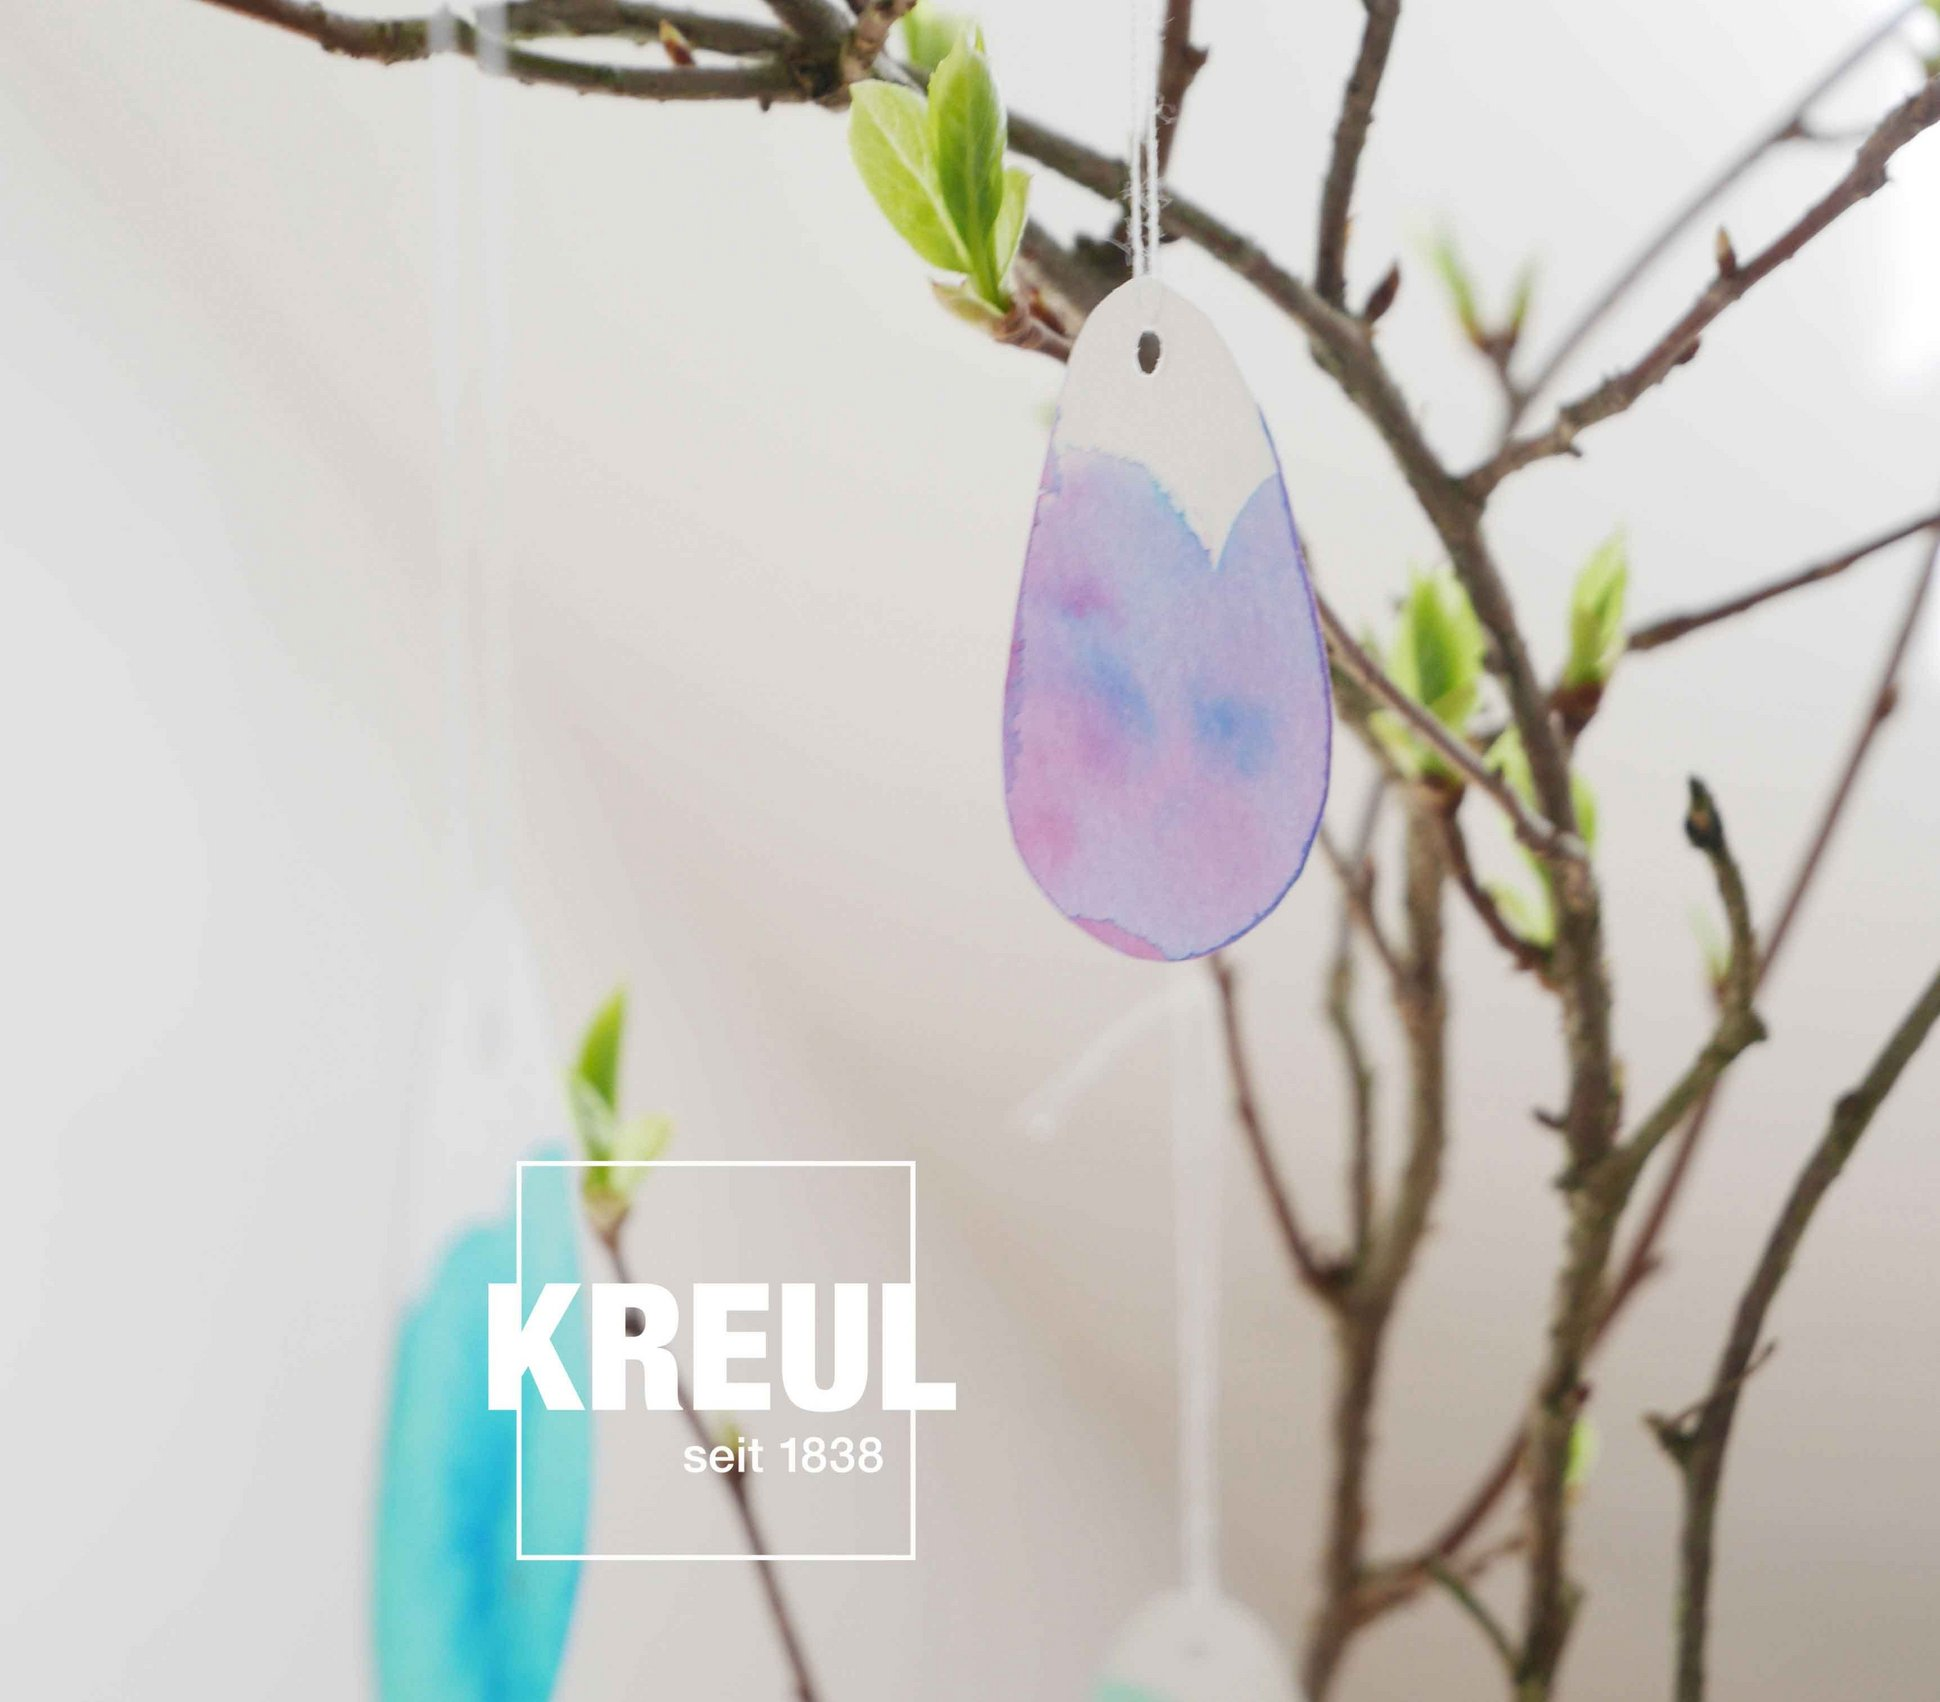 KREUL Watercolor Aquarell Stift basteln Ostern